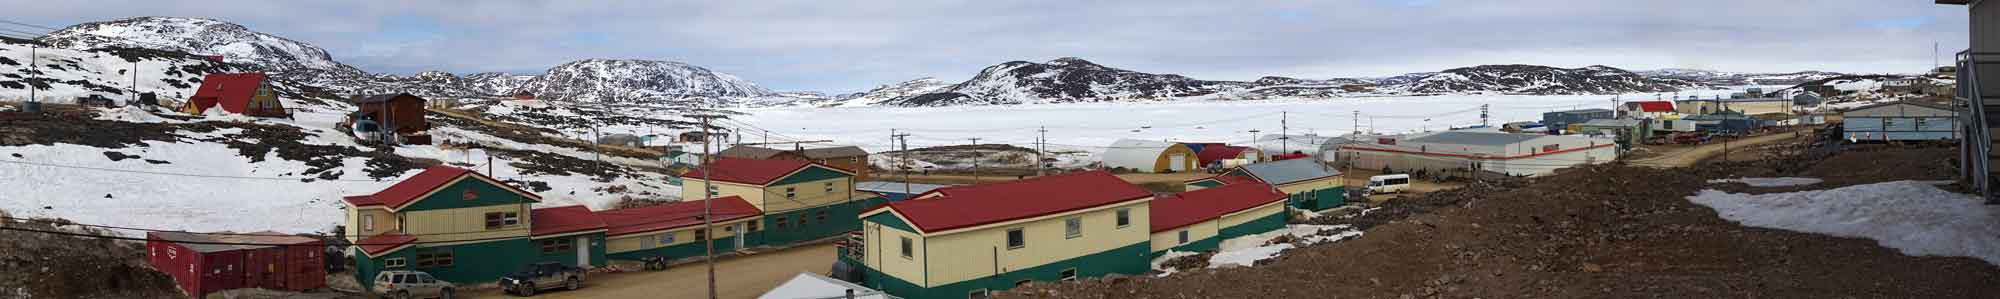 Panoramic view of Kinngait Arts and kellit bay, Cape Dorset. Photo: ©Christine Montague 2014